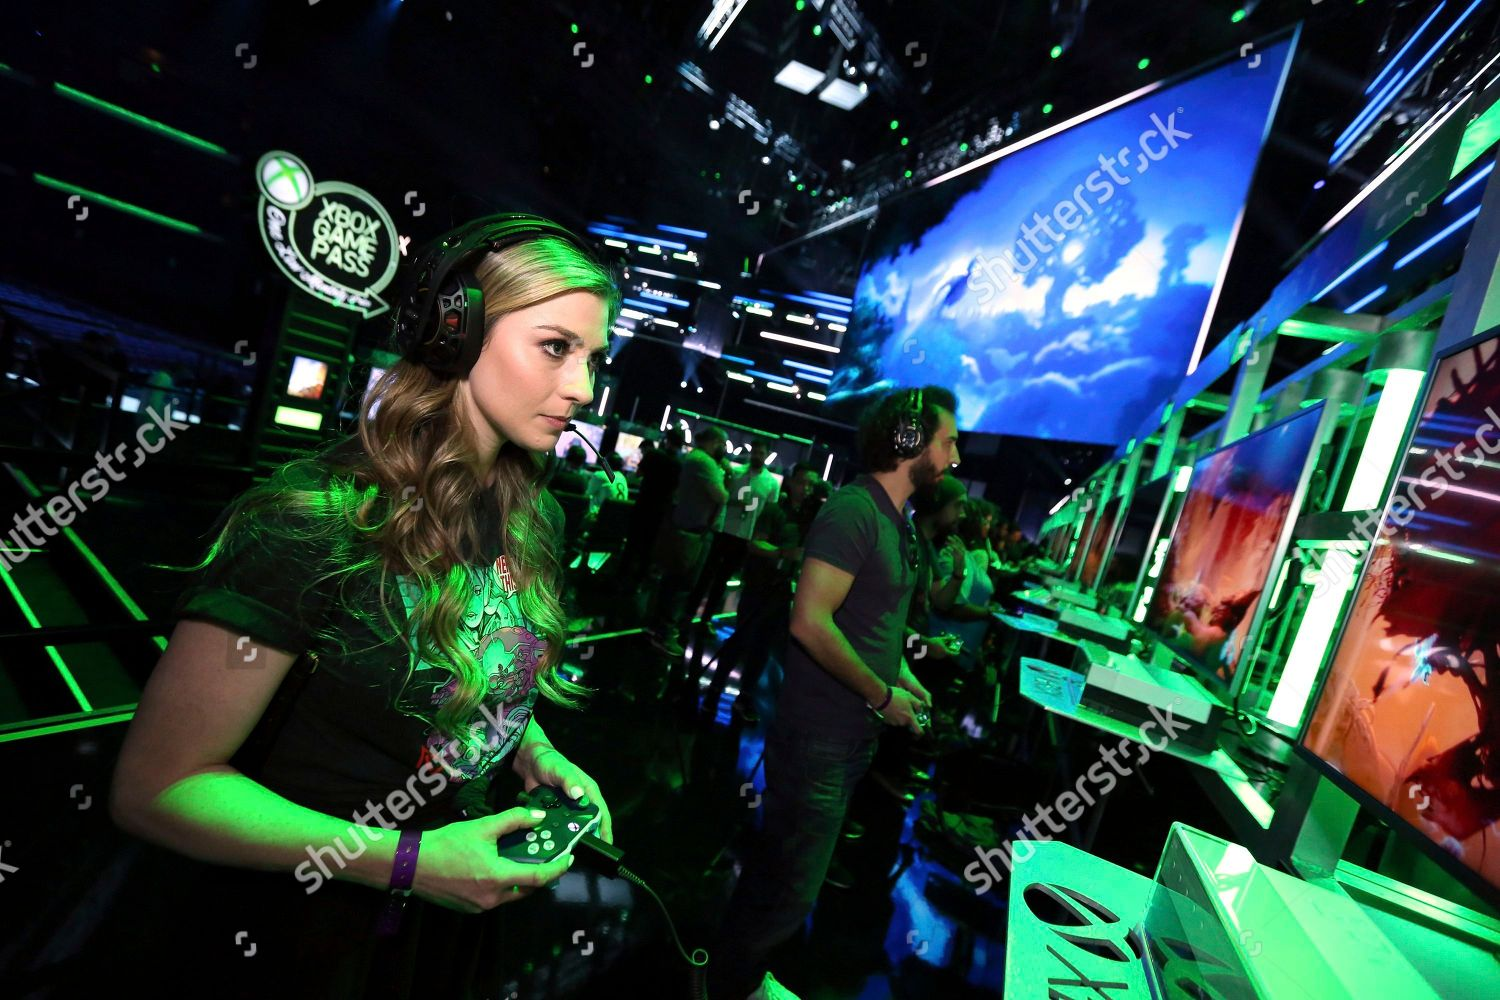 xbox-e3-2018-briefing-fanfest-and-showcase-event-los-angeles-usa-shutterstock-editorial-9709318a.jpg